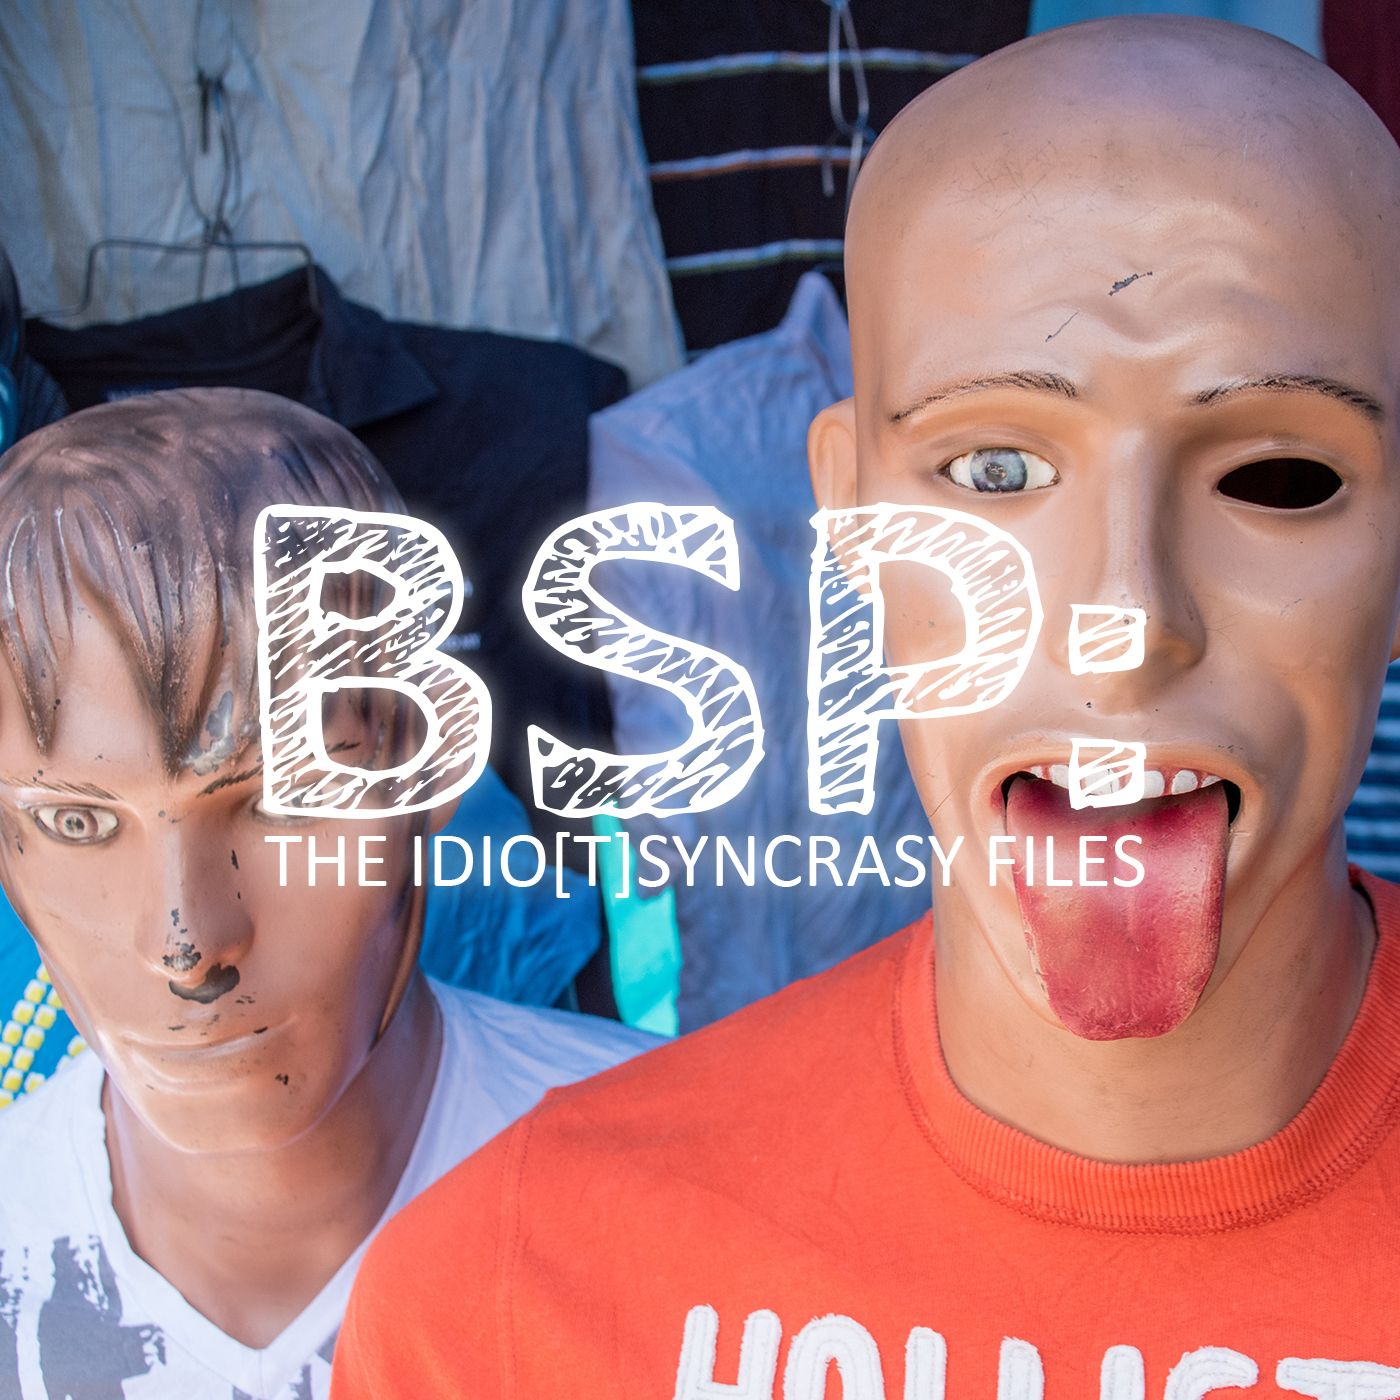 BSP: The Idio[t]syncrasy Files